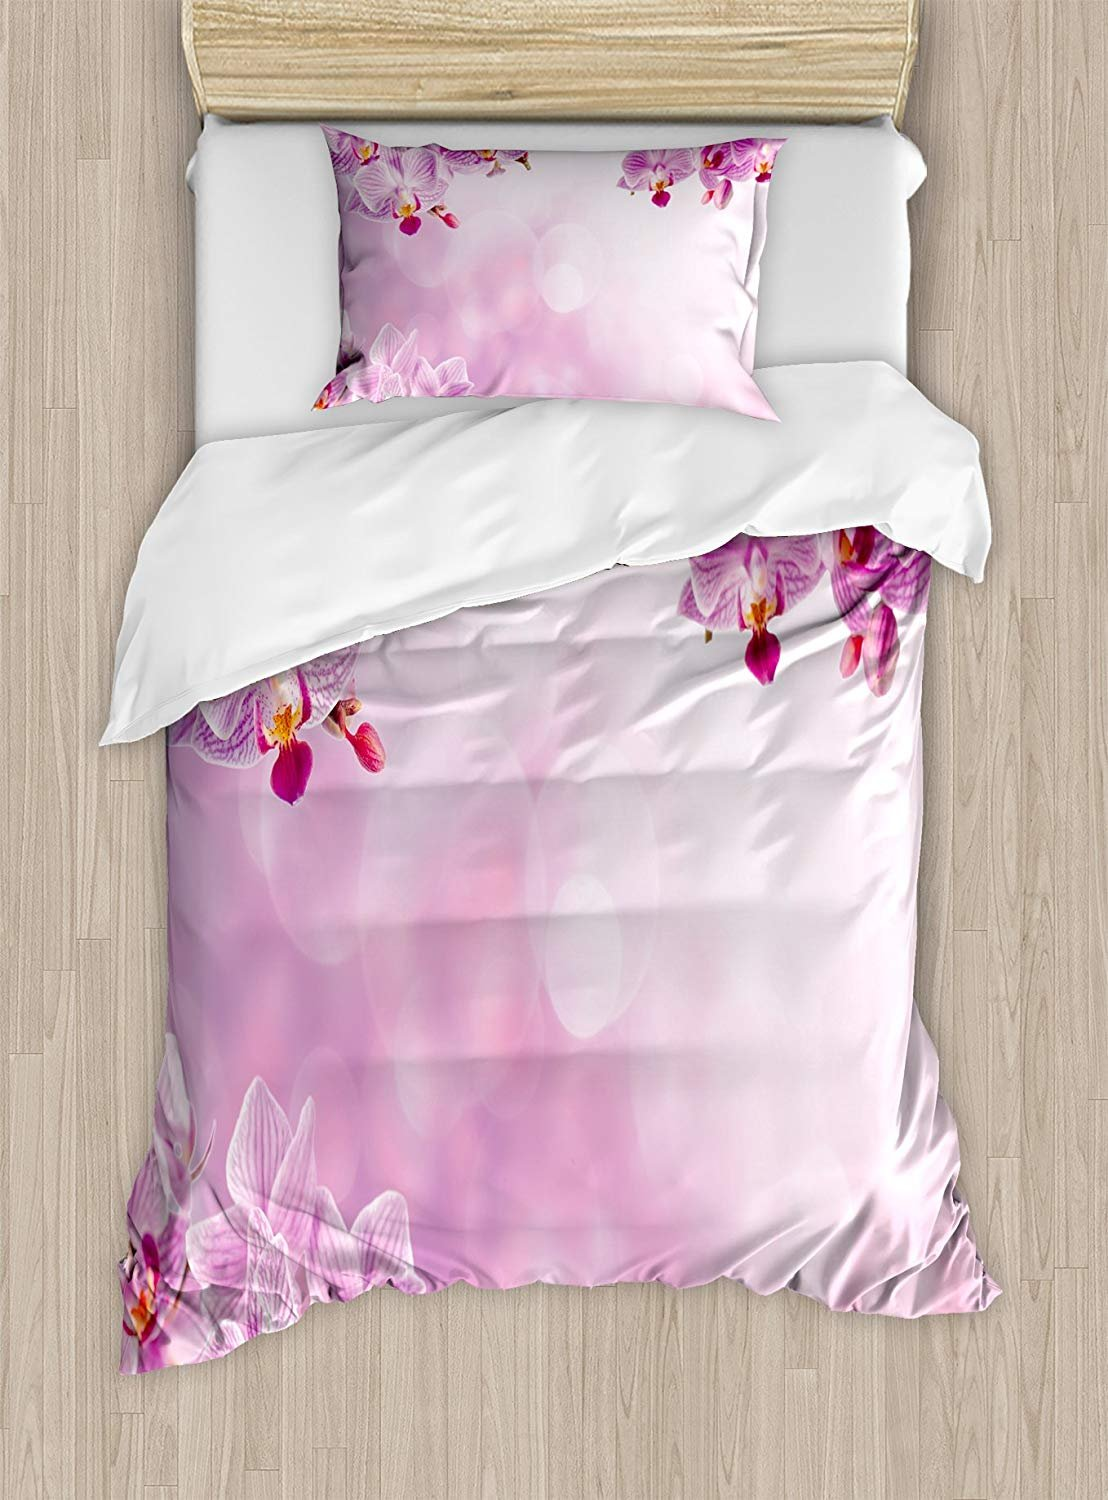 Twin XL Extra Long Bedding Set,Spa Duvet Cover Set,Orchid Petals in Monochrome Design Bouquet Spring Bloom Seedling Growth Peaceful Nature Print,Include 1 Flat Sheet 1 Duvet Cover and 2 Pillow Cases